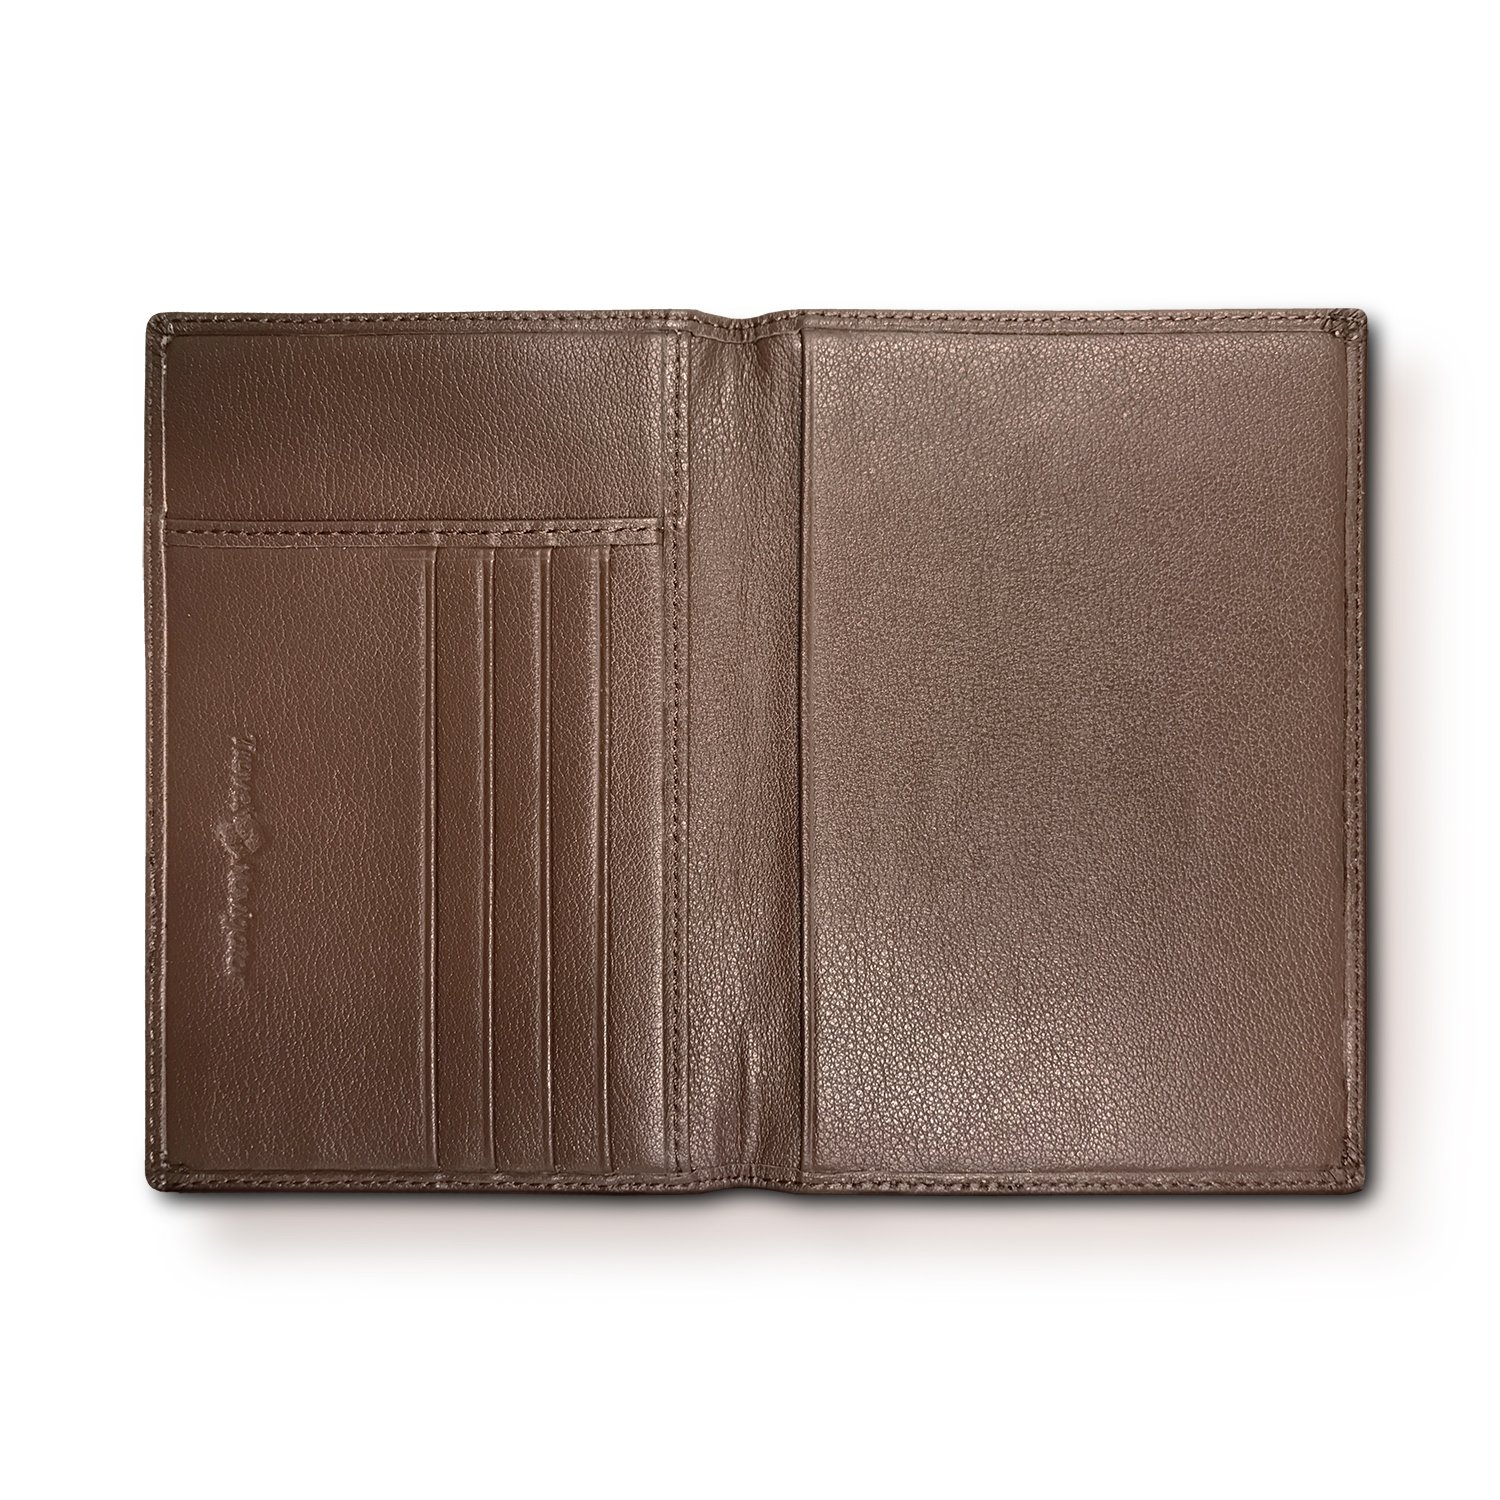 RFID Blocking Folding Leather Passport Holder Wallet For Men and Women - Brown by Travel Navigator